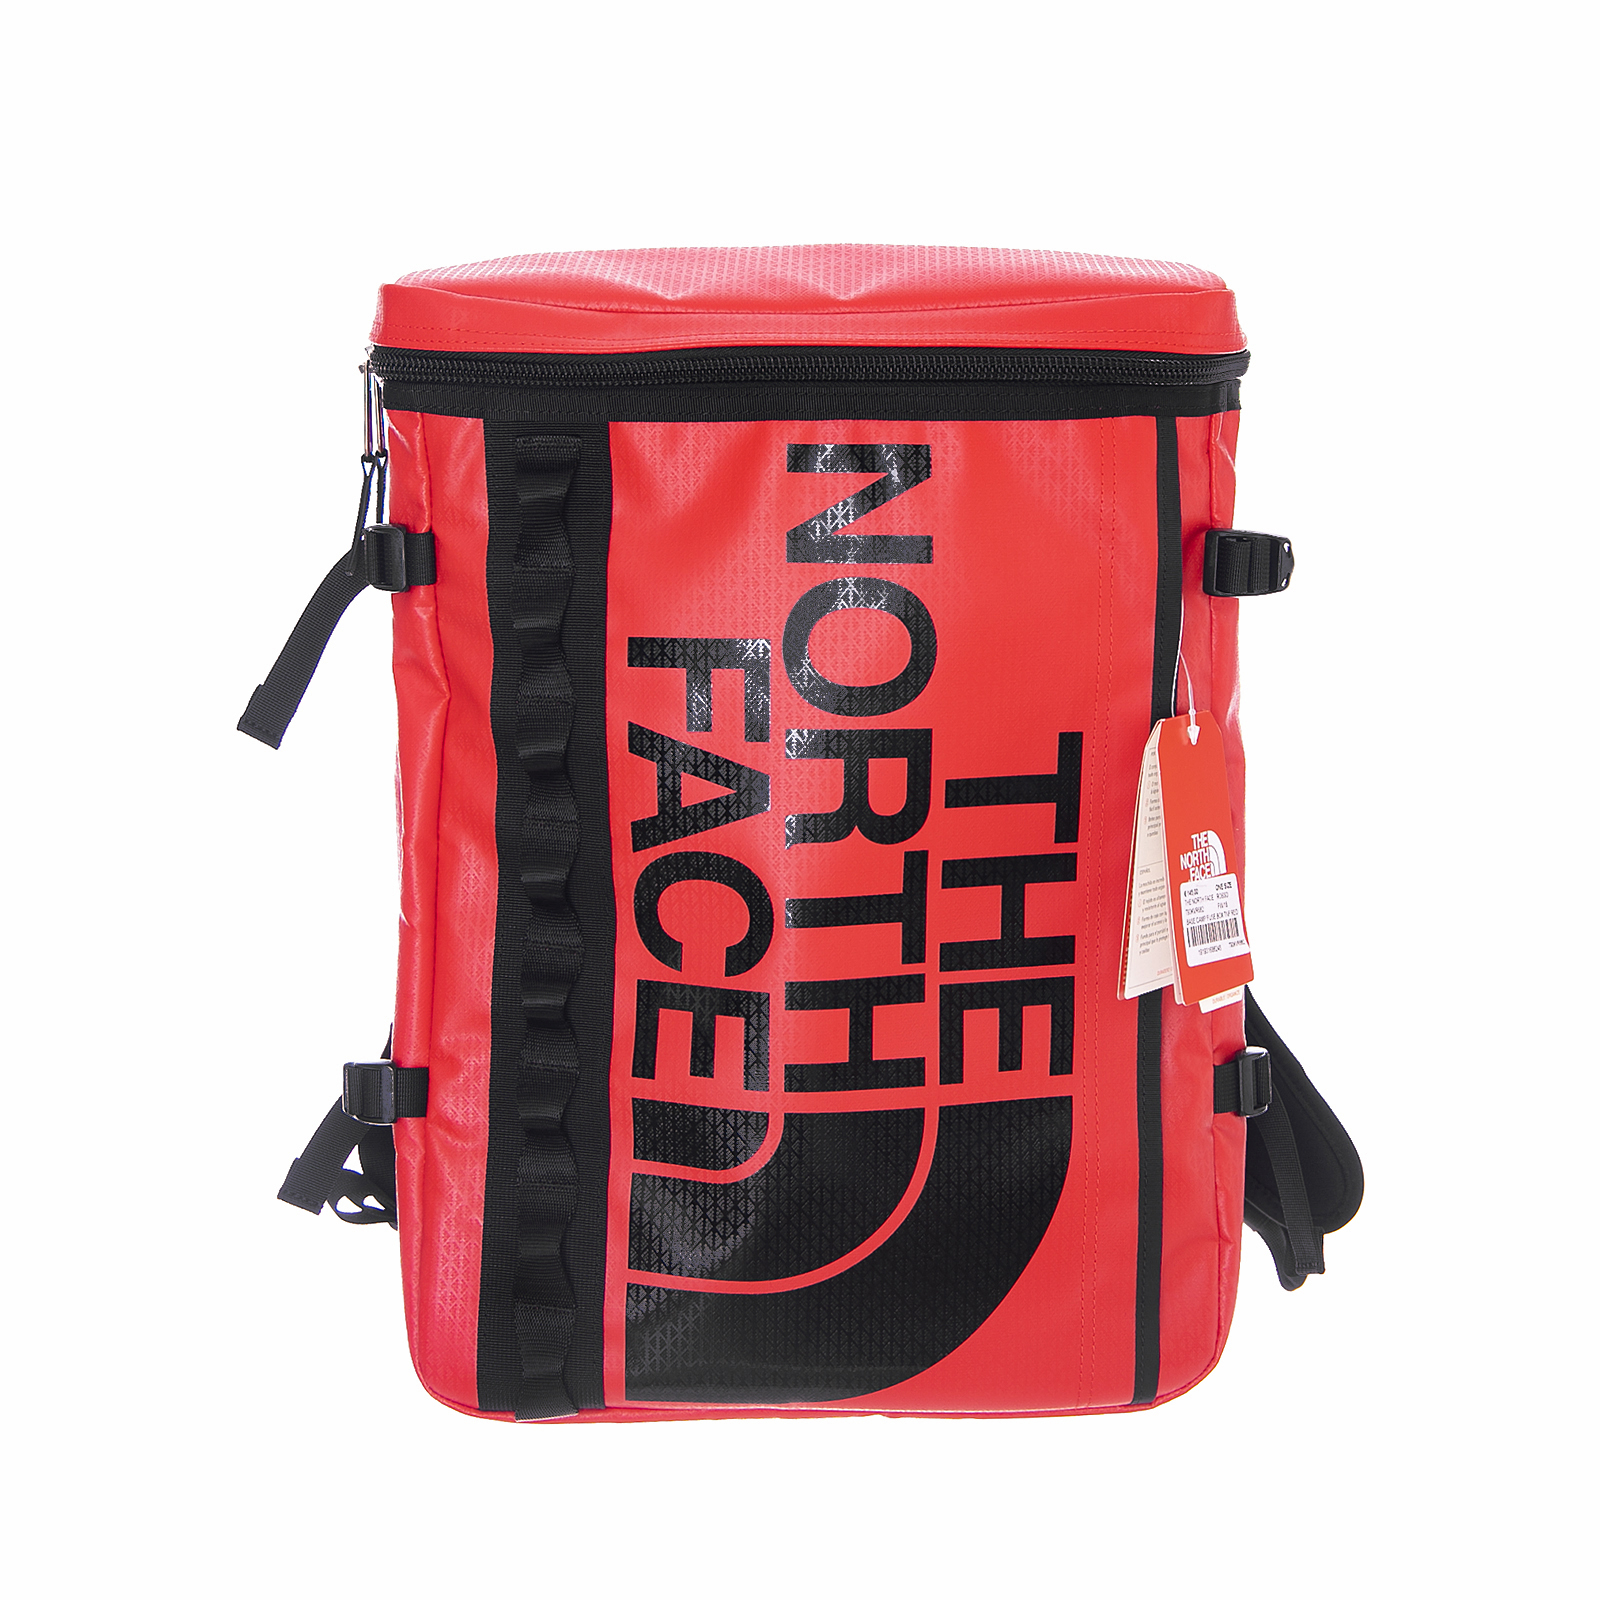 Rosso Box Fuse Zaini Red Tnf North Face Eur Base 00 Camp The 145 YHXxzq